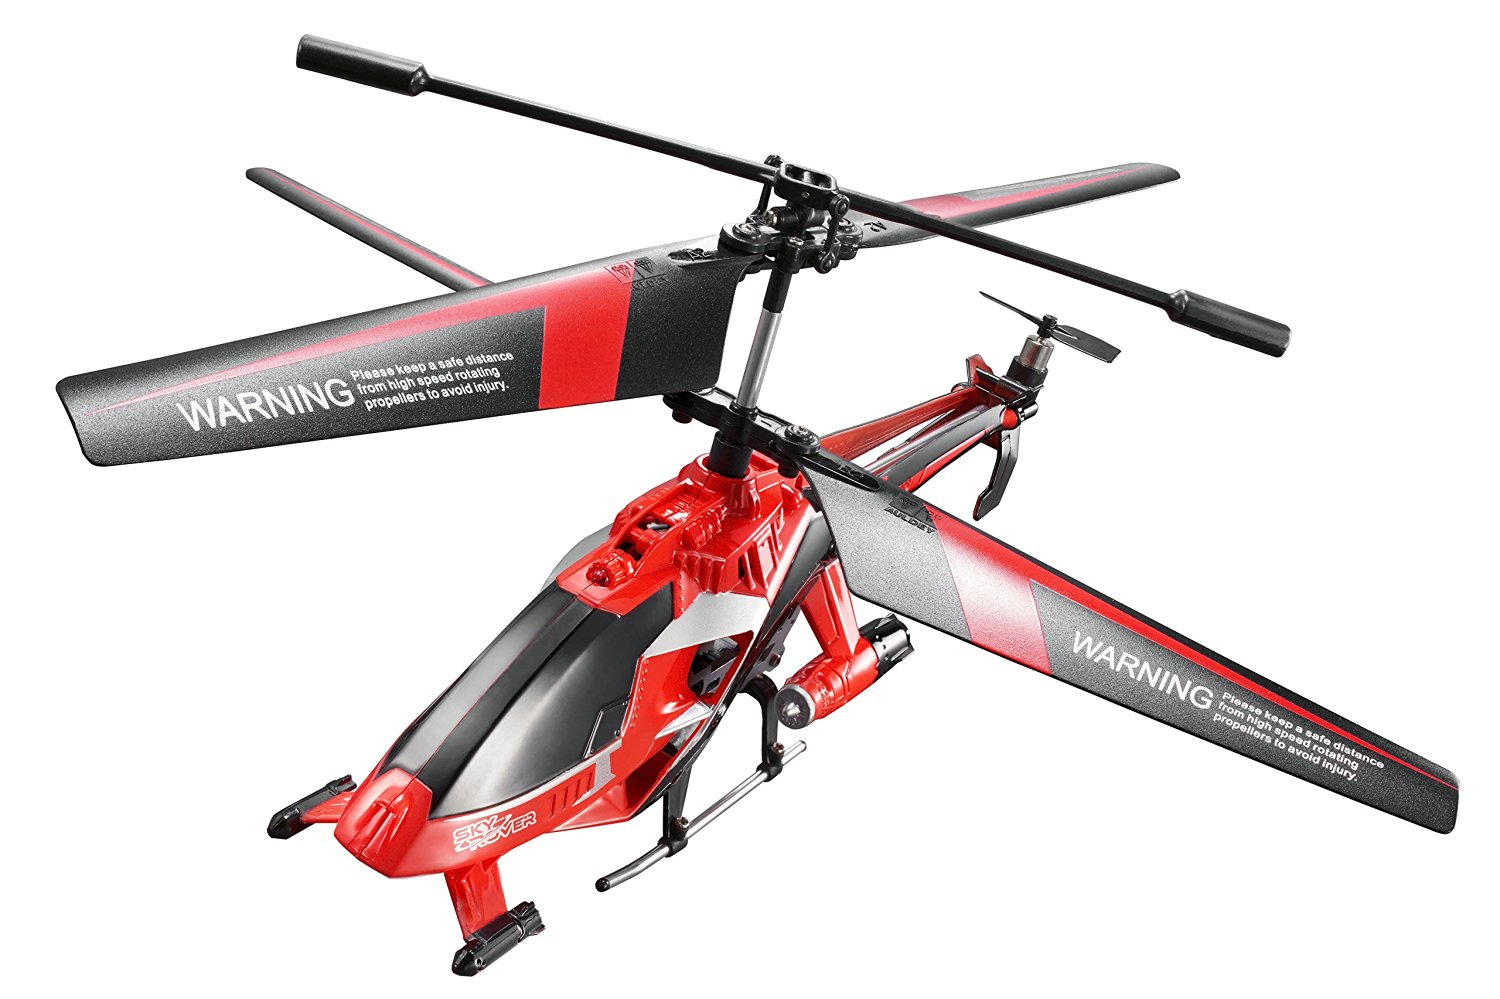 propel rc helicopter parts with Search on Rc Sky Drone Sharper Image as well Gyroscope Remote Control Helicopter as well Orbi 003 Main Gear Parts For Propel Orbit Hd Drone Quadcopter likewise Walkera Qr X350 Pro Rc Quadcopter Parts 5 8g Receiver Mushroom Antenna Html also 1195229 32284892145.